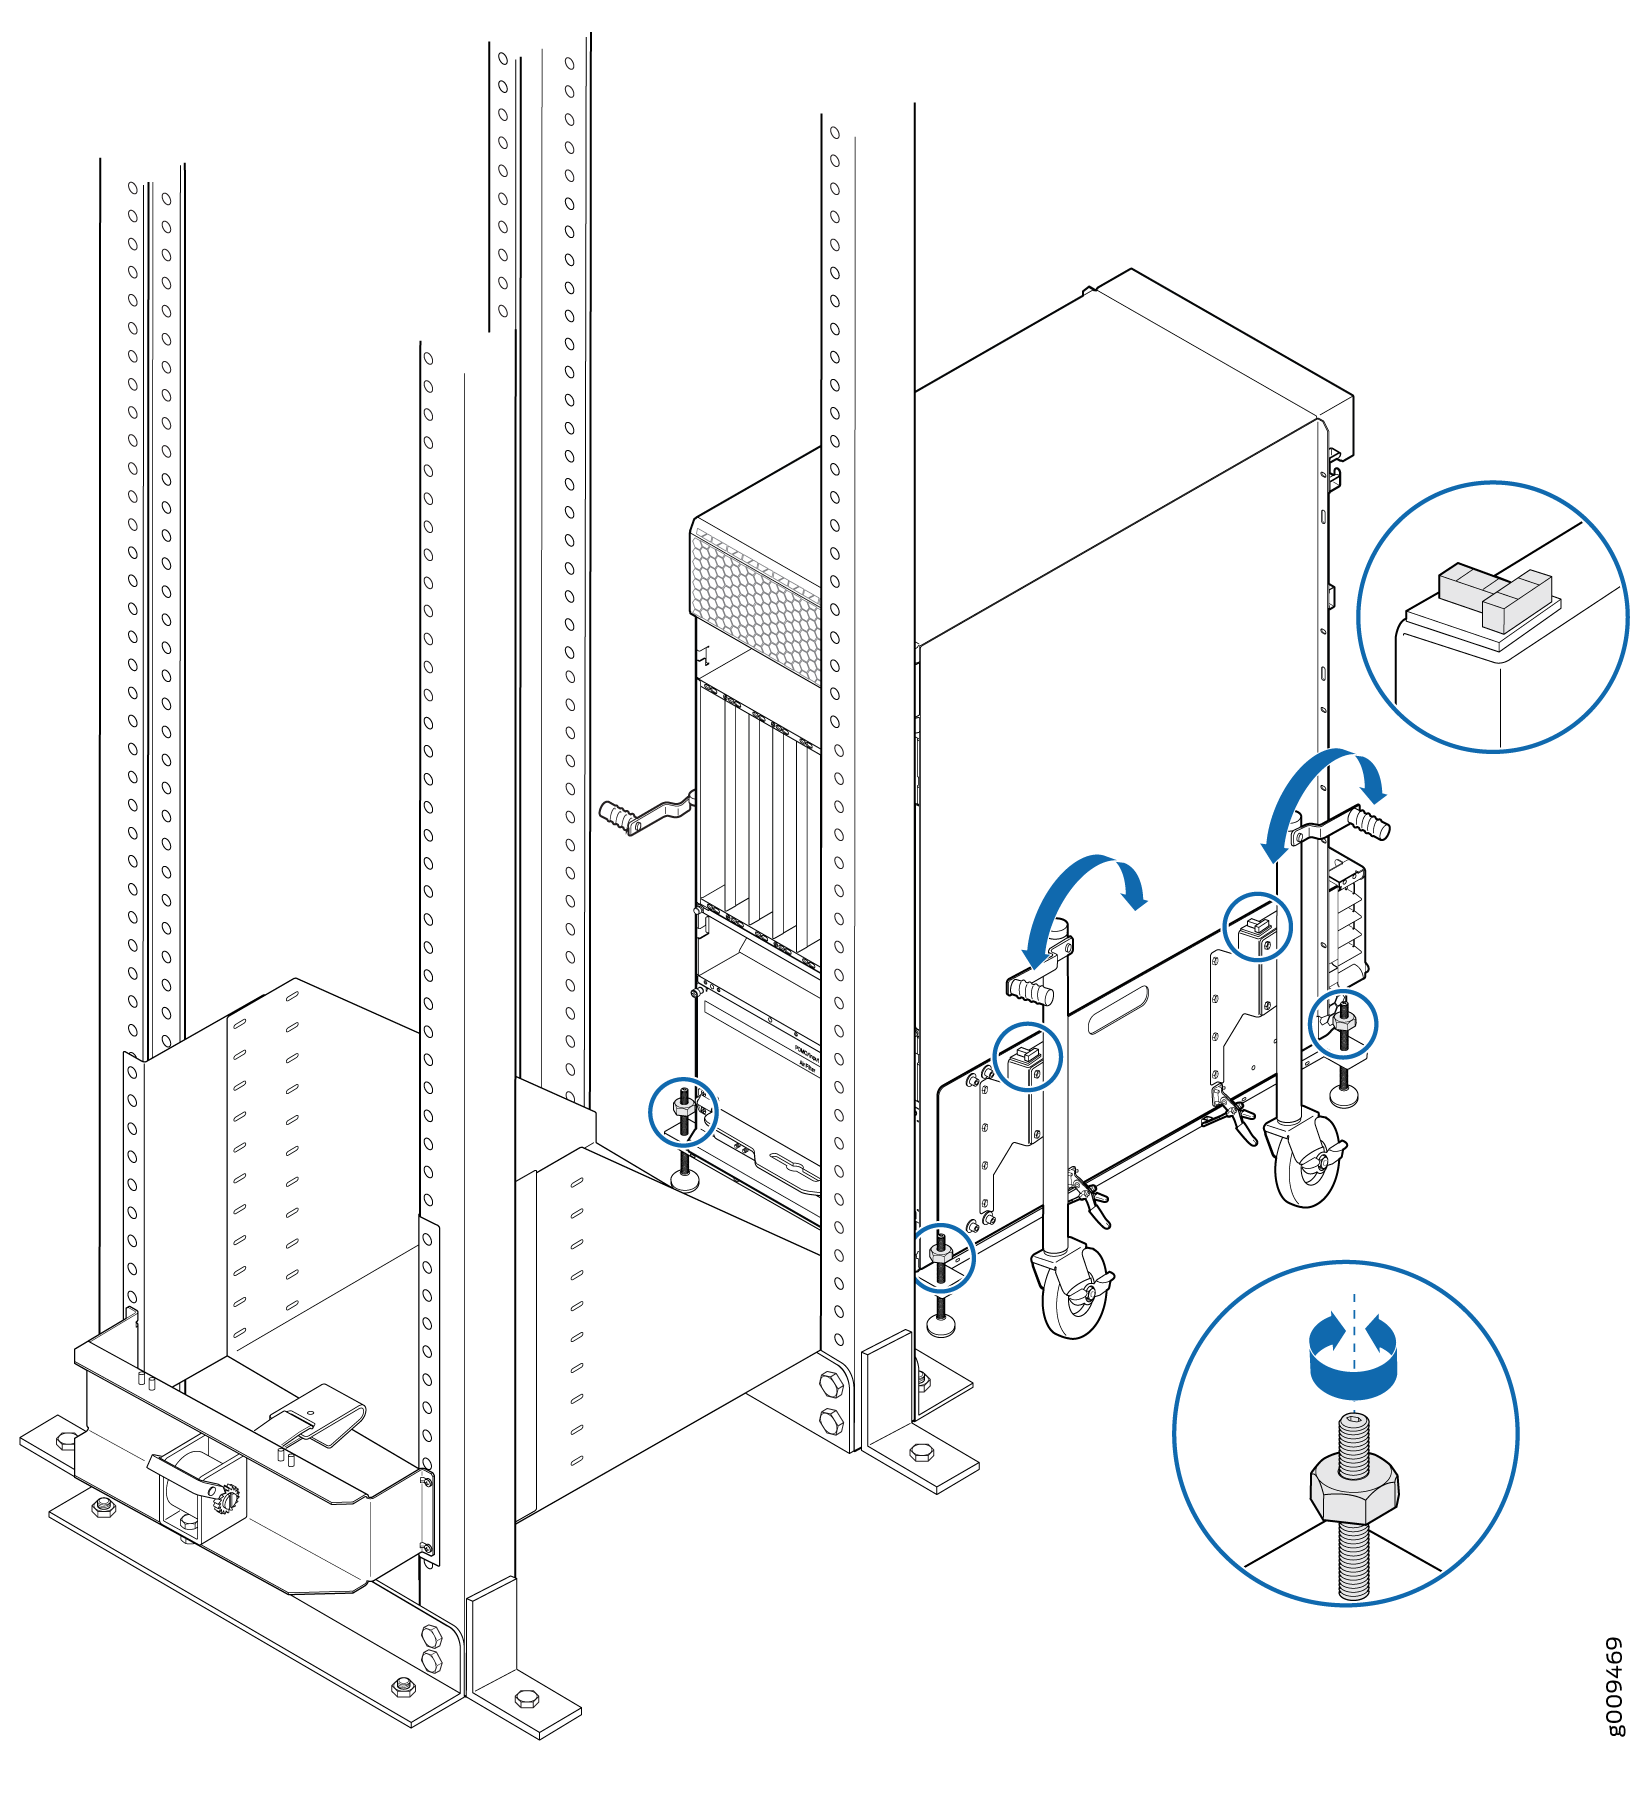 Align the MX2008 Router with Rack Mounting Shelf